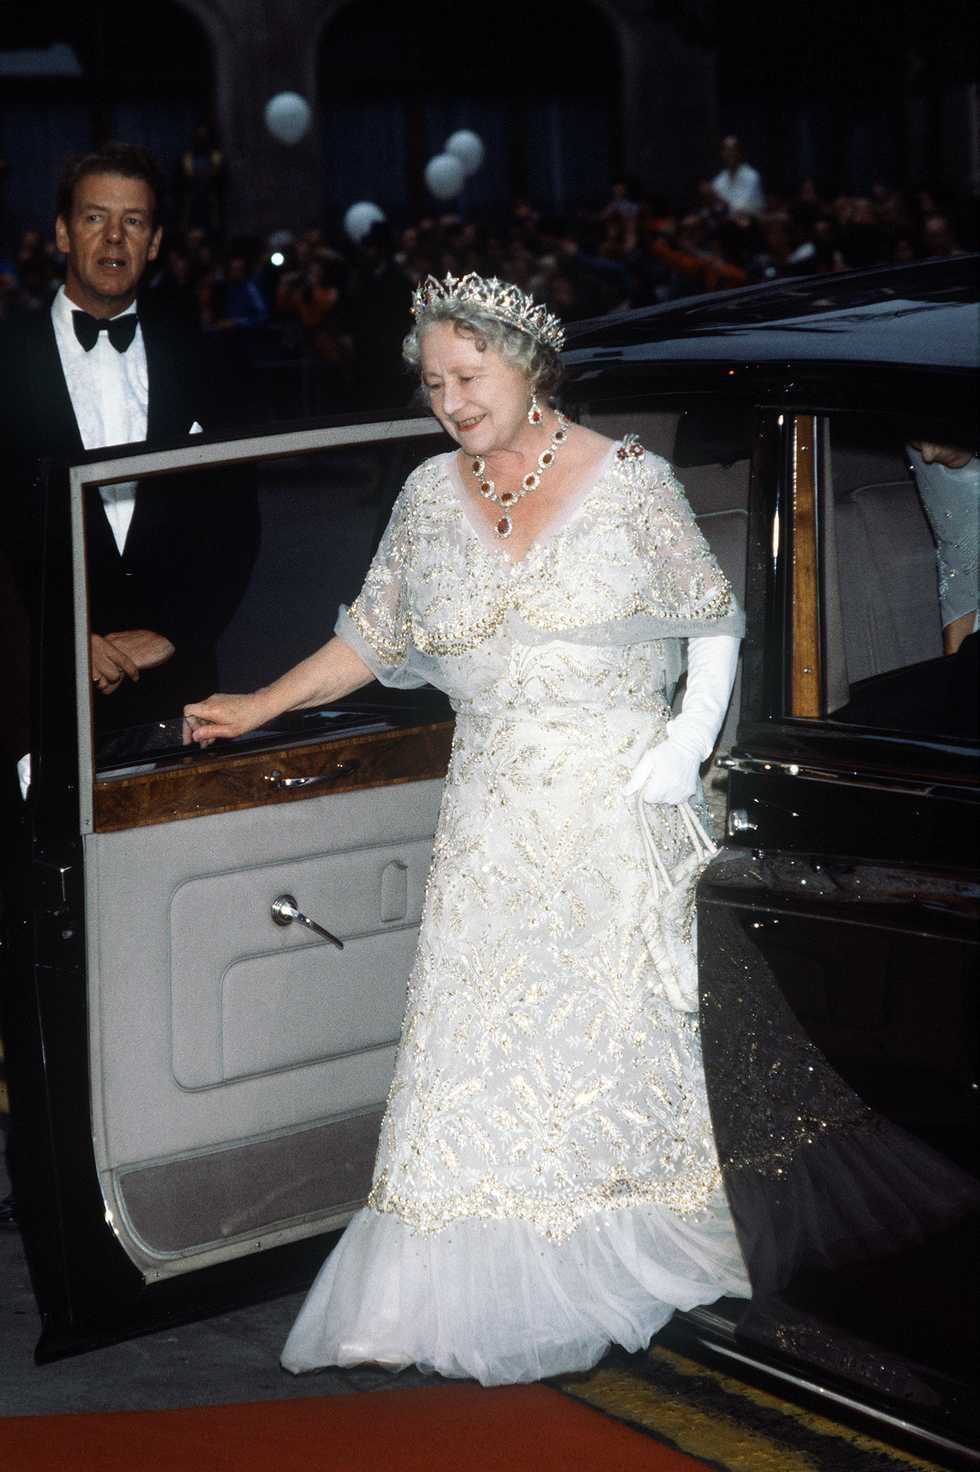 The Greatest Gowns That Queen Elizabeth Meghan Markle And More Royals Have Worn Royal Gowns Royal Dresses Queen Mother [ 1472 x 980 Pixel ]